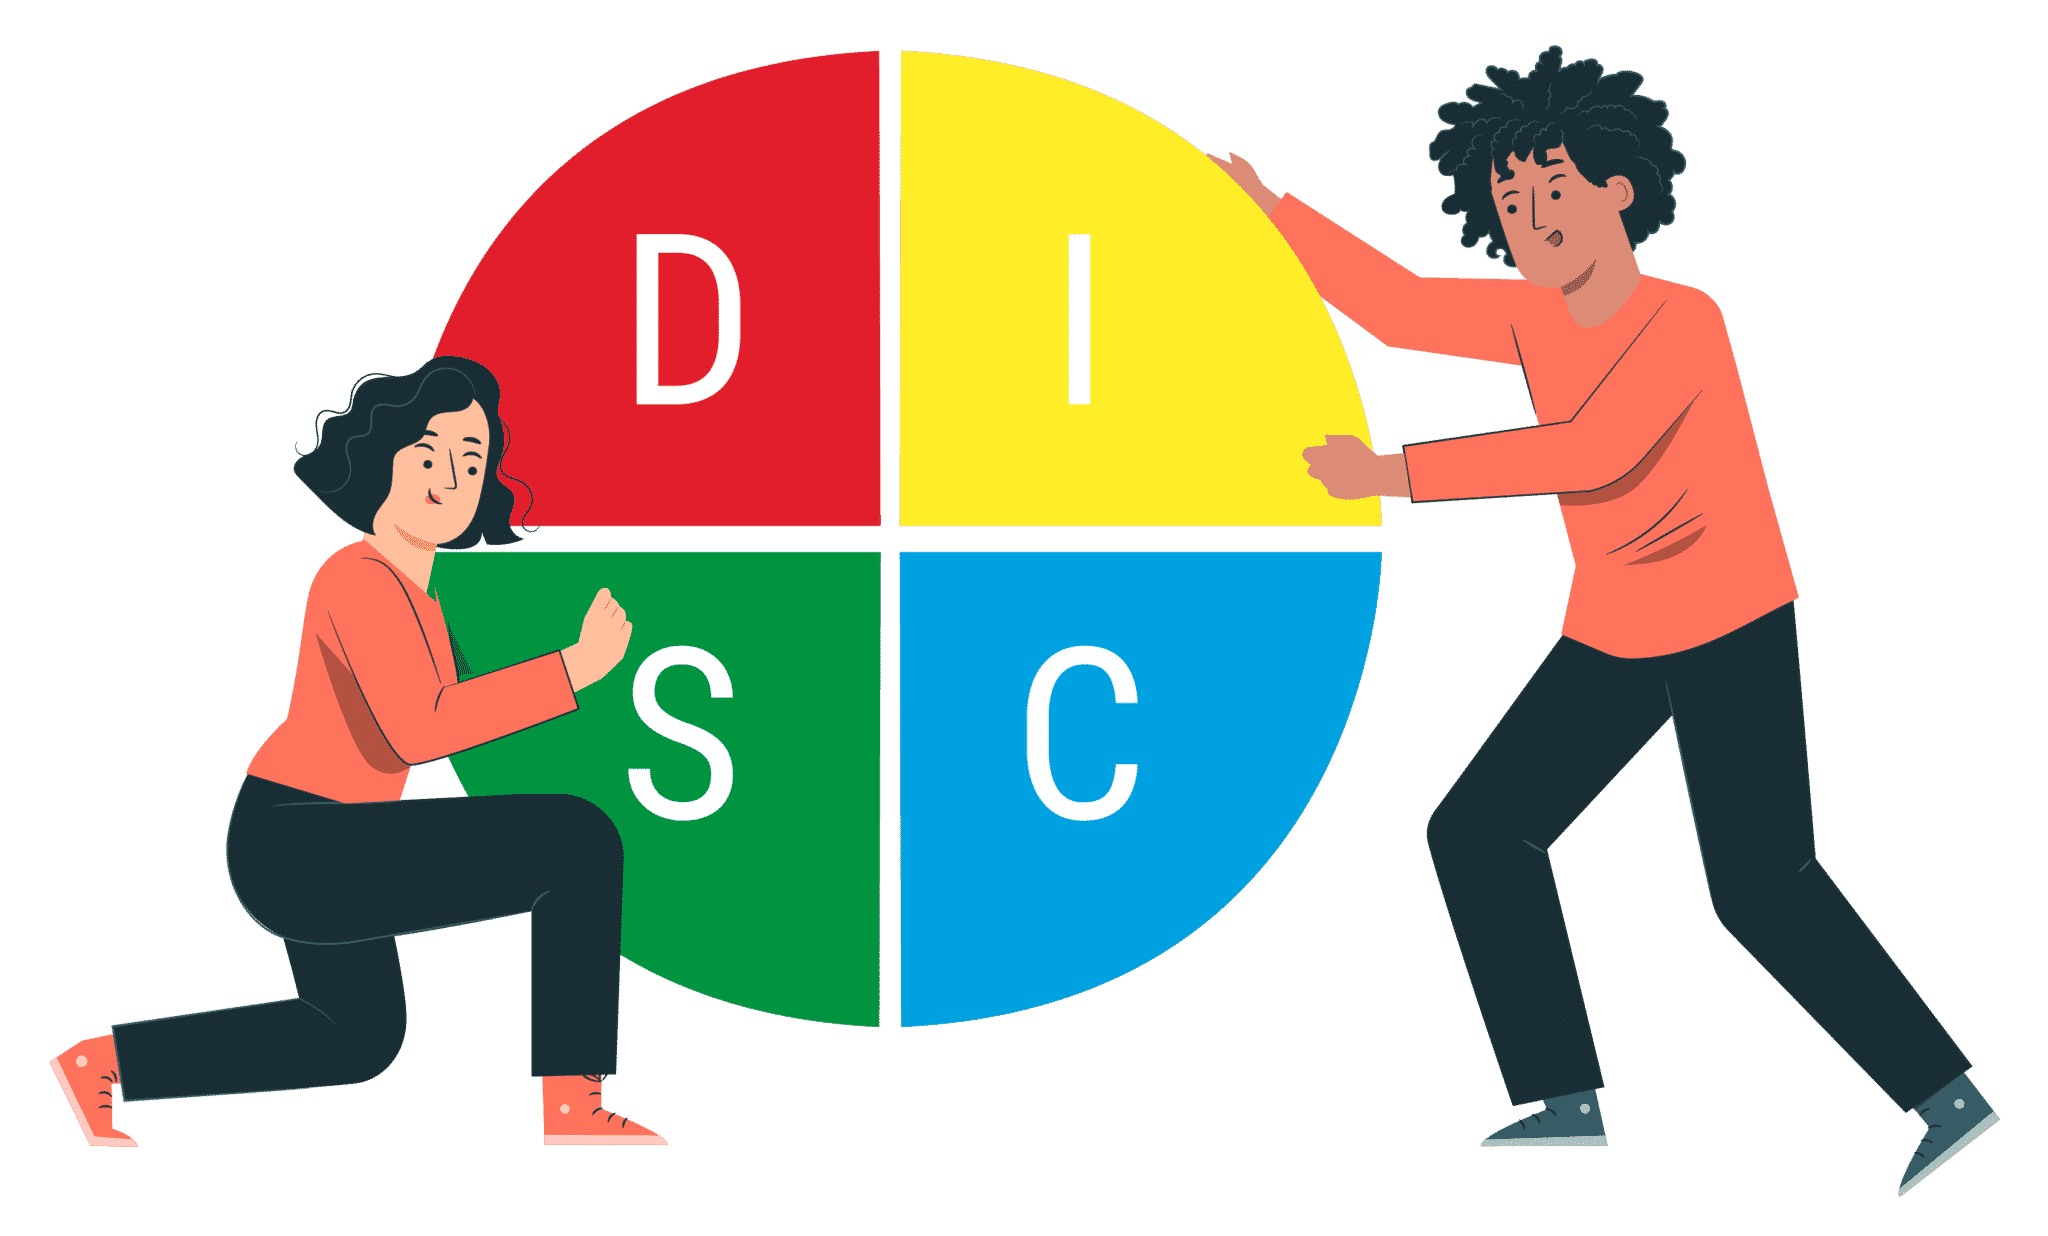 DiSC Profiling: The Definitive Guide